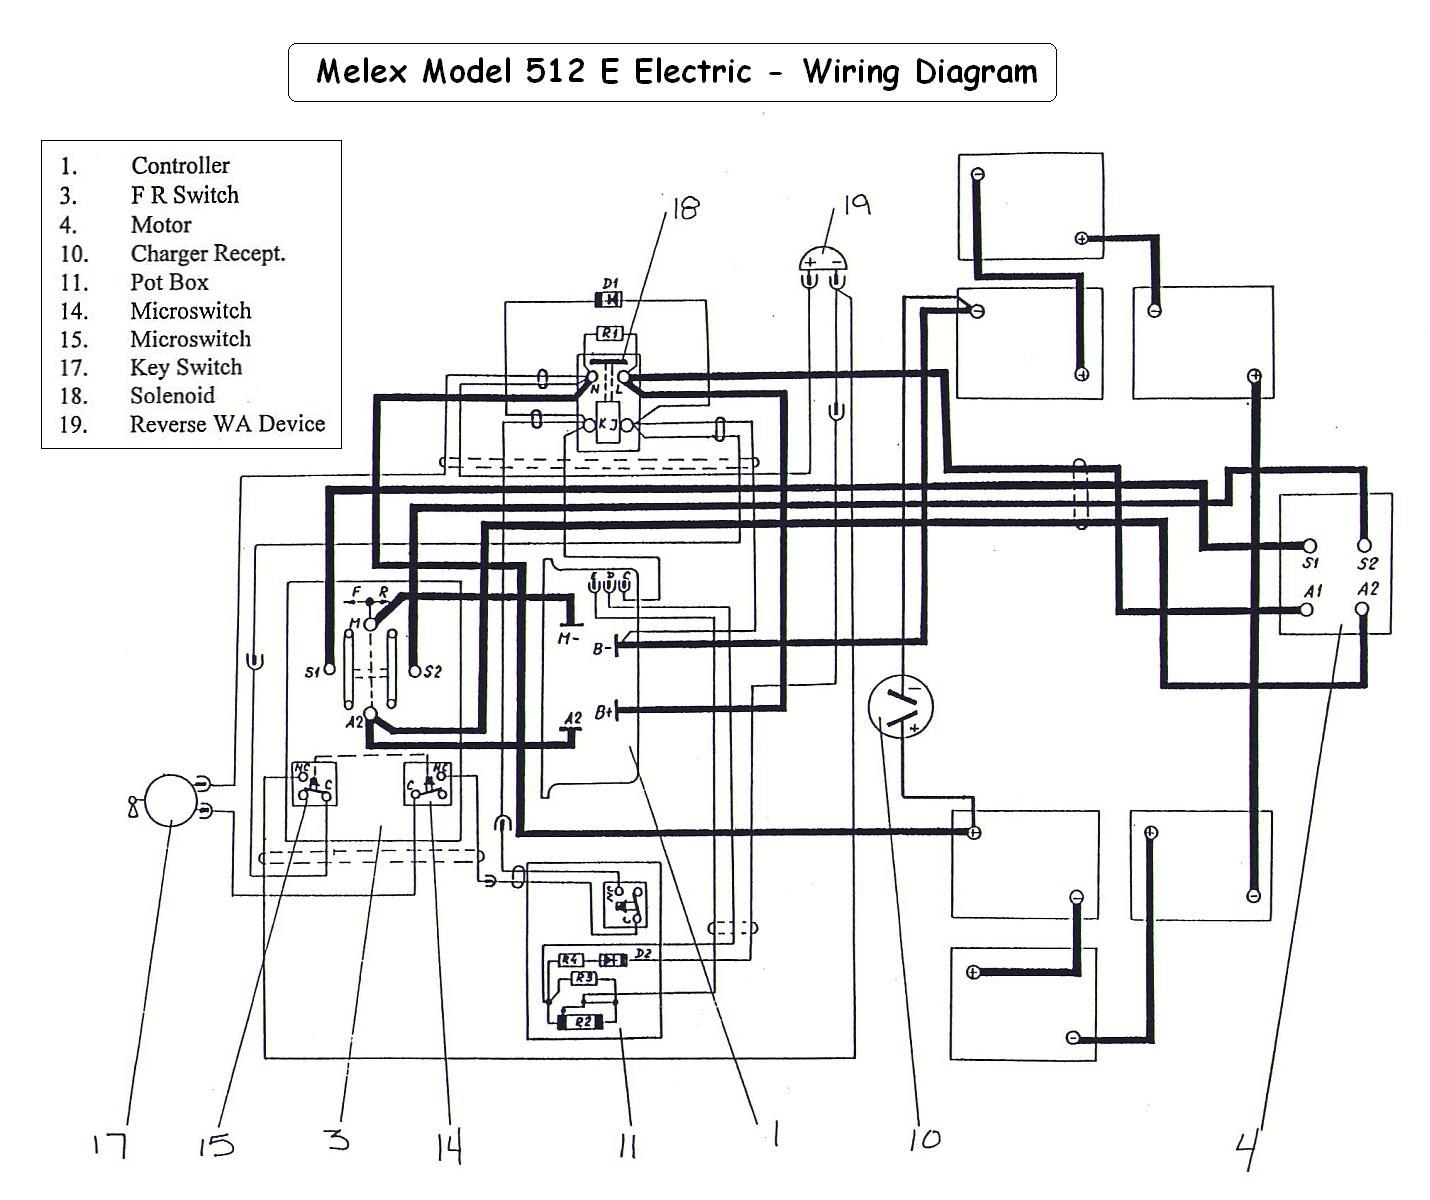 Melex512E_wiring_diagram vintagegolfcartparts com westinghouse golf cart wiring diagram at soozxer.org